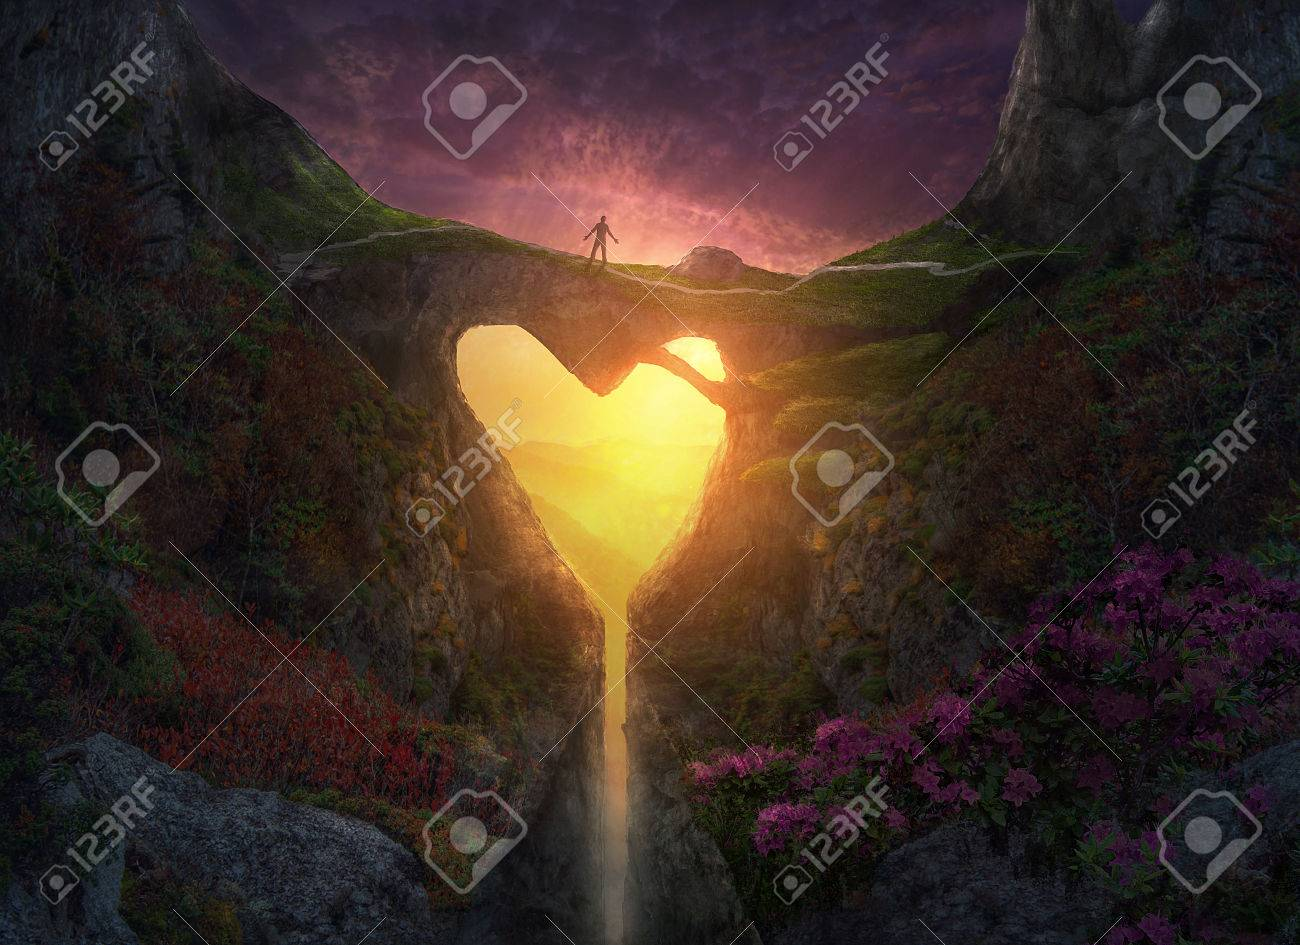 A heart shaped bridge across a canyon in the forest. - 75724070